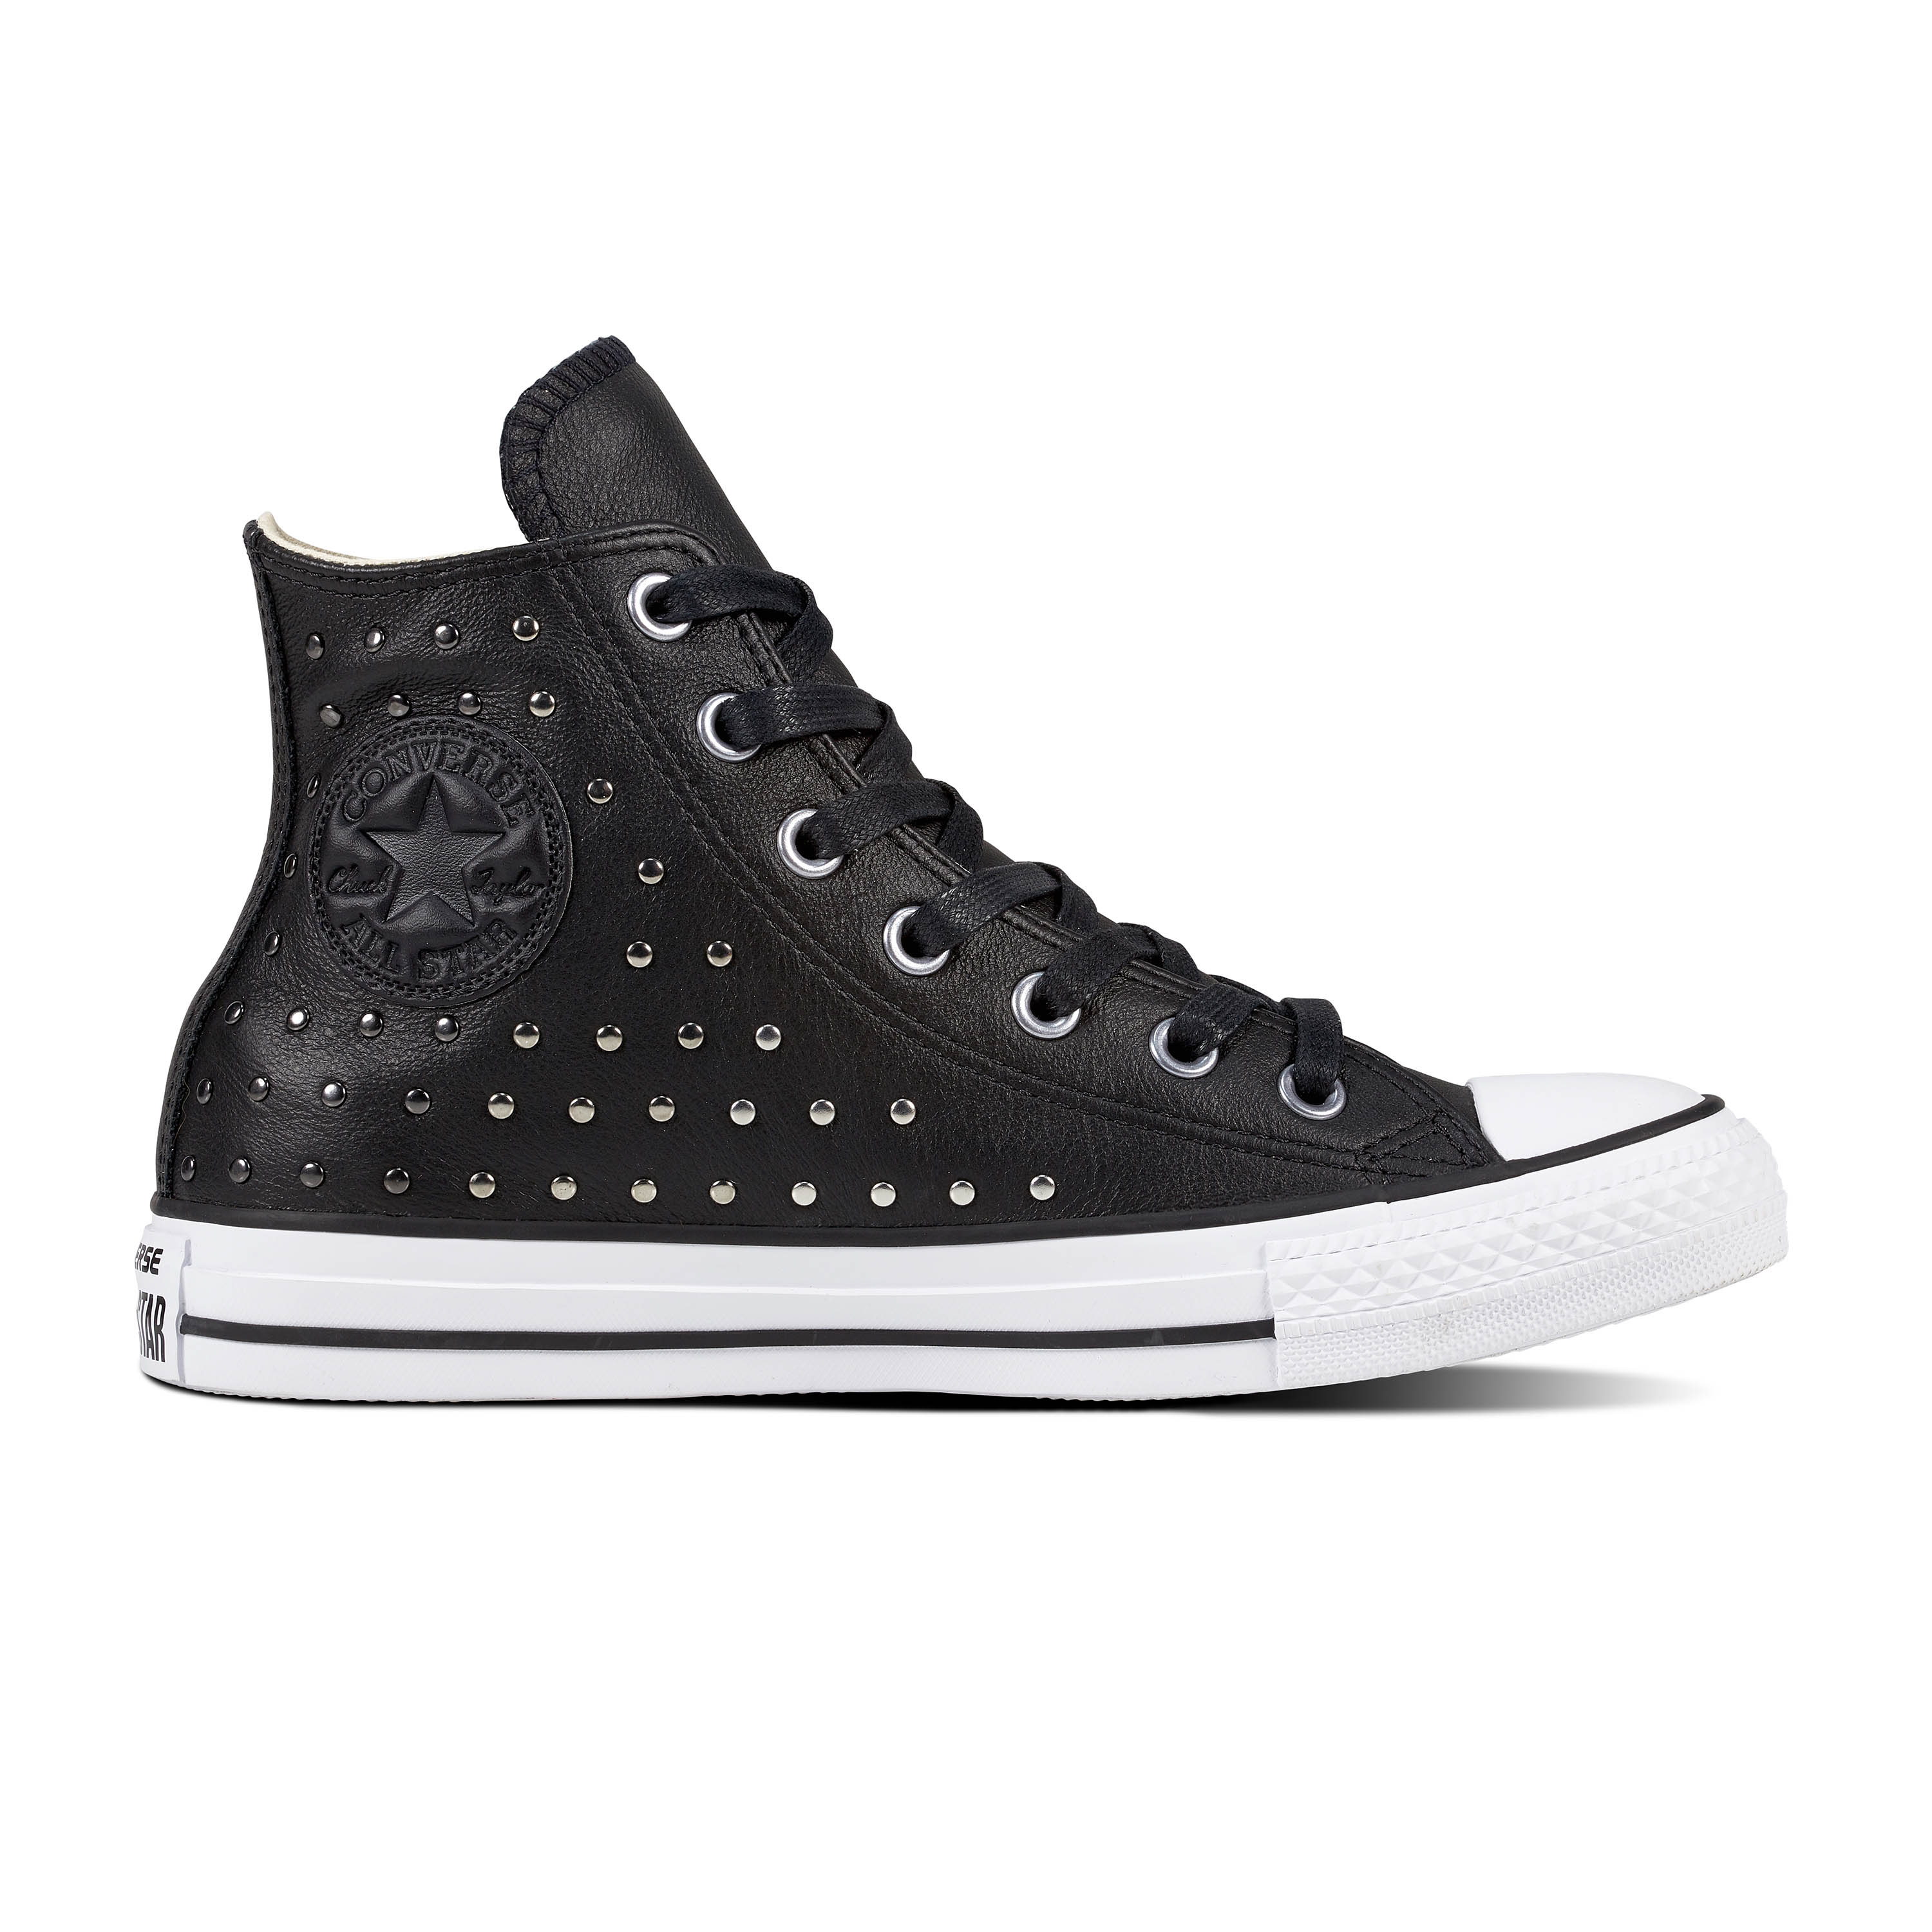 Converse CHUCK TAYLOR ALL STAR HIGH TOP, ženske sportske tenisice, crna